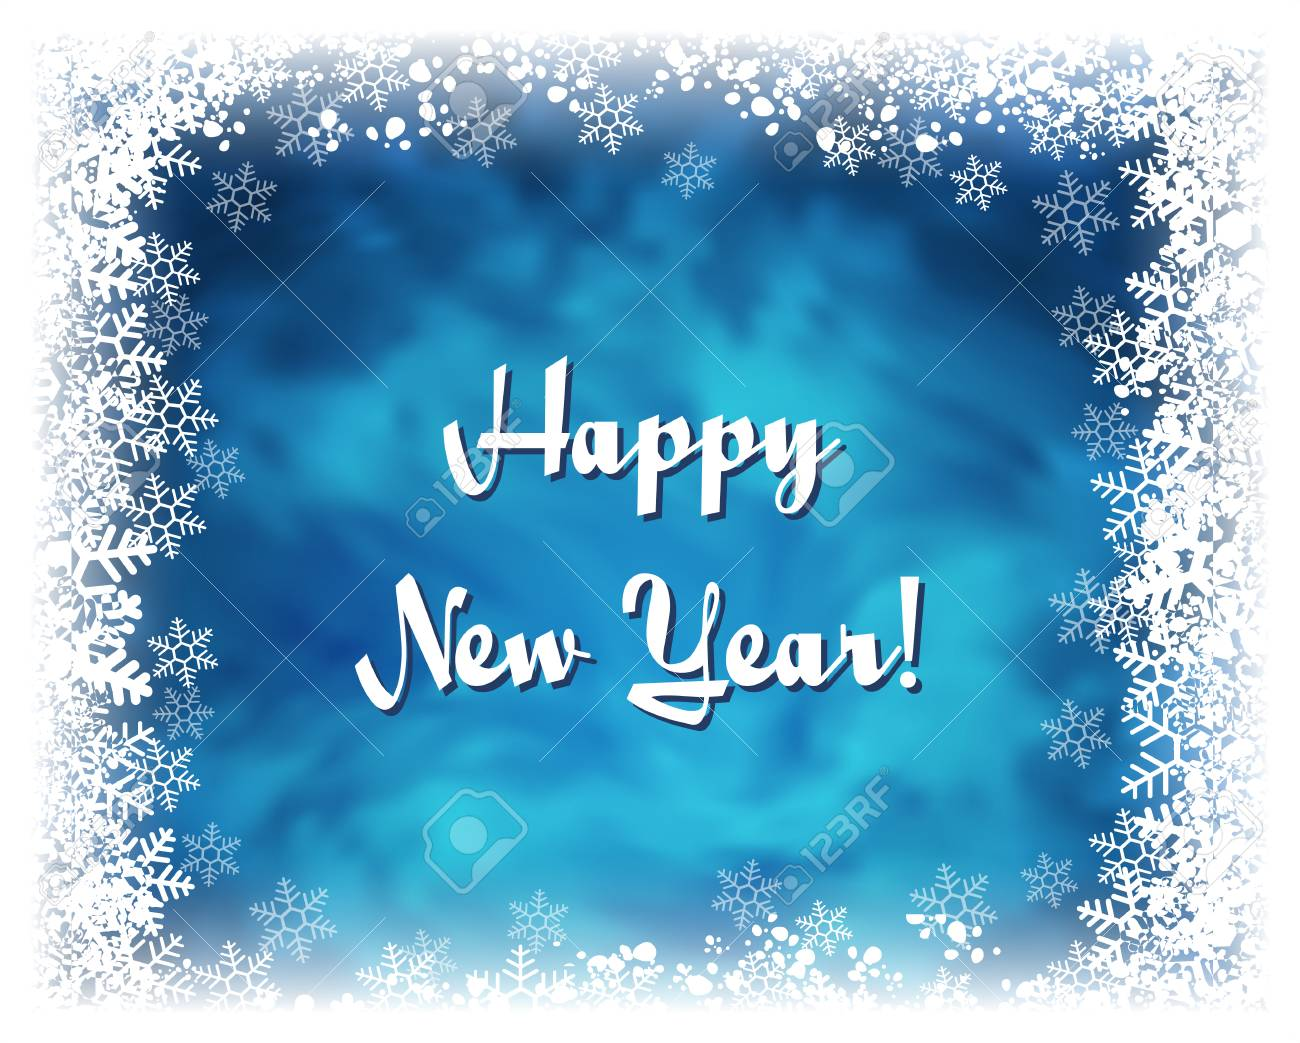 happy new year greeting card vector textured blue background with frame of white snowflakes